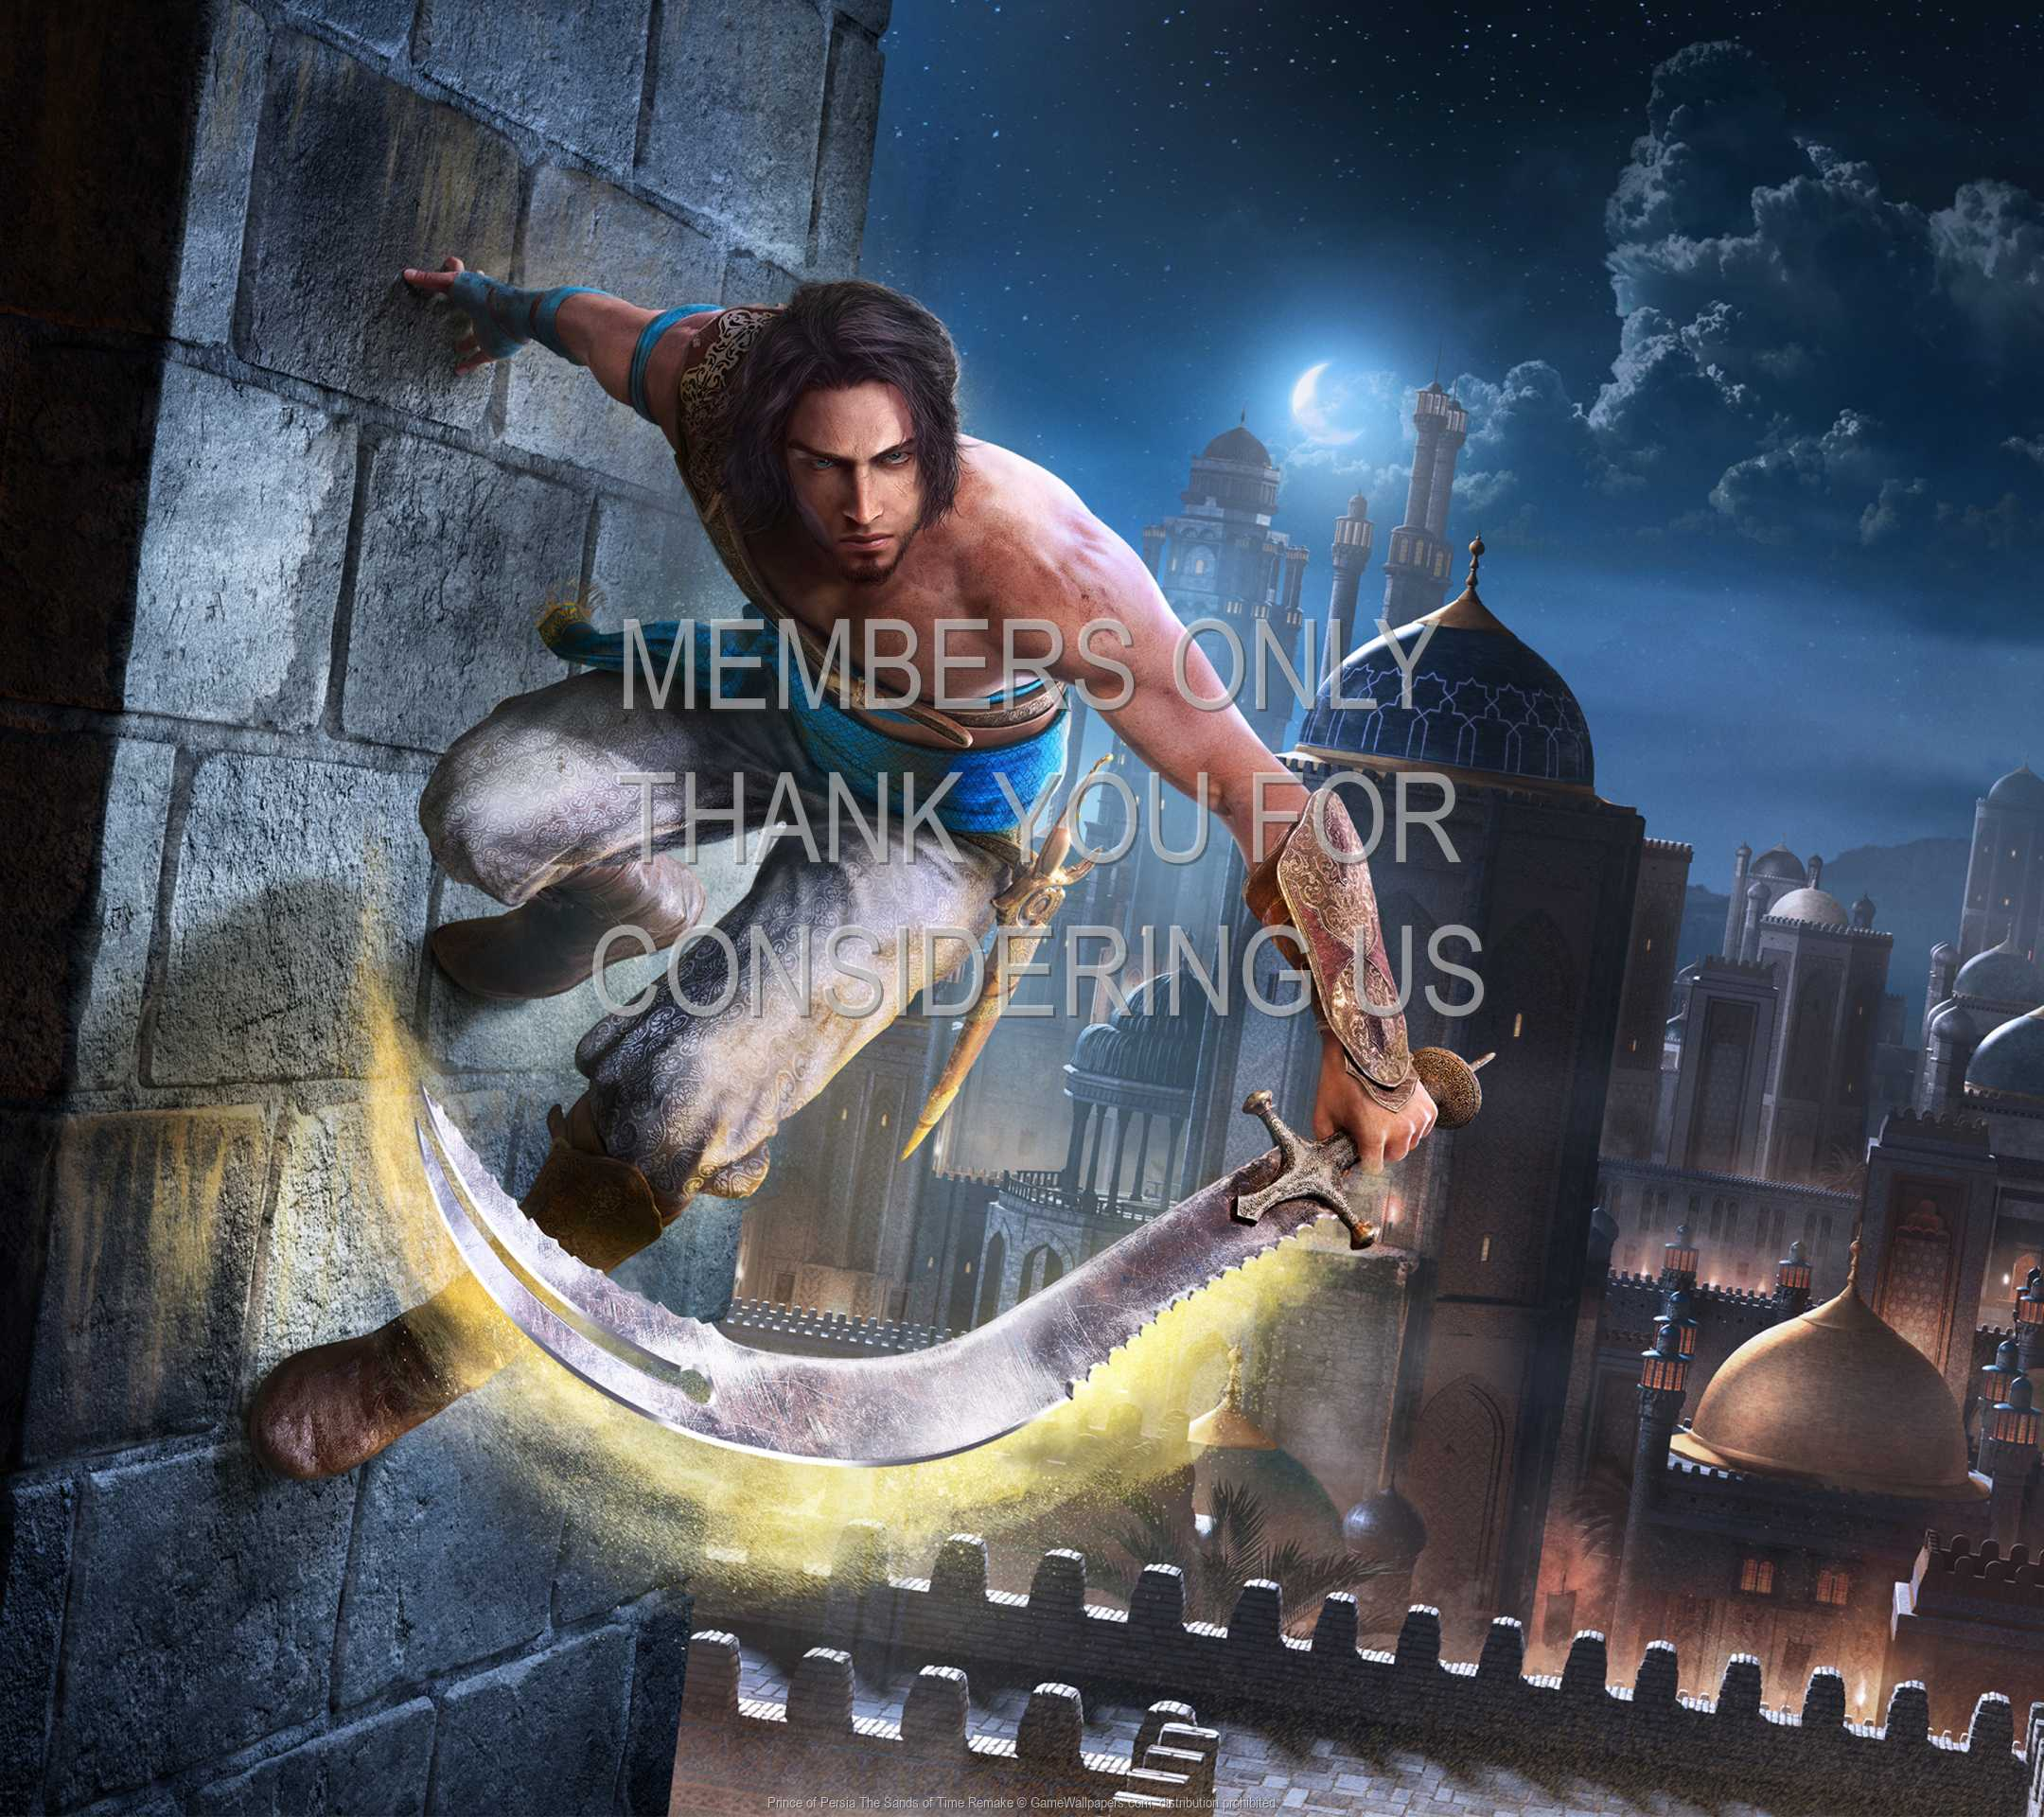 Prince of Persia: The Sands of Time Remake 1080p Horizontal Móvil fondo de escritorio 01